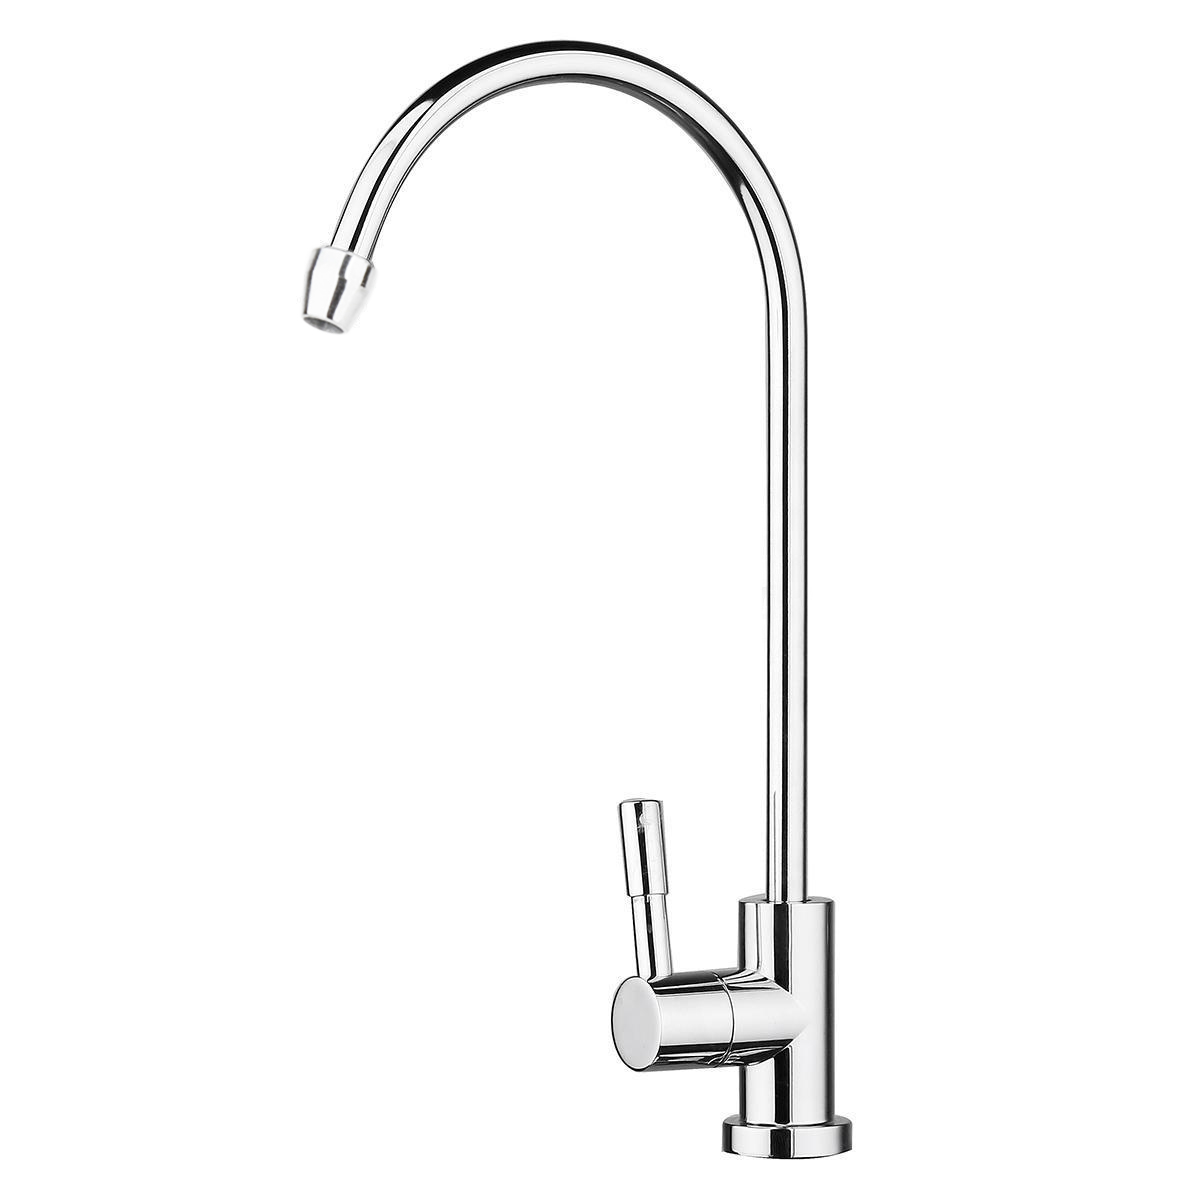 Stainless Steel Drinking RO Water Filter Faucet 1/4 360 Degree Rotation Design Fit Kitchen Sink